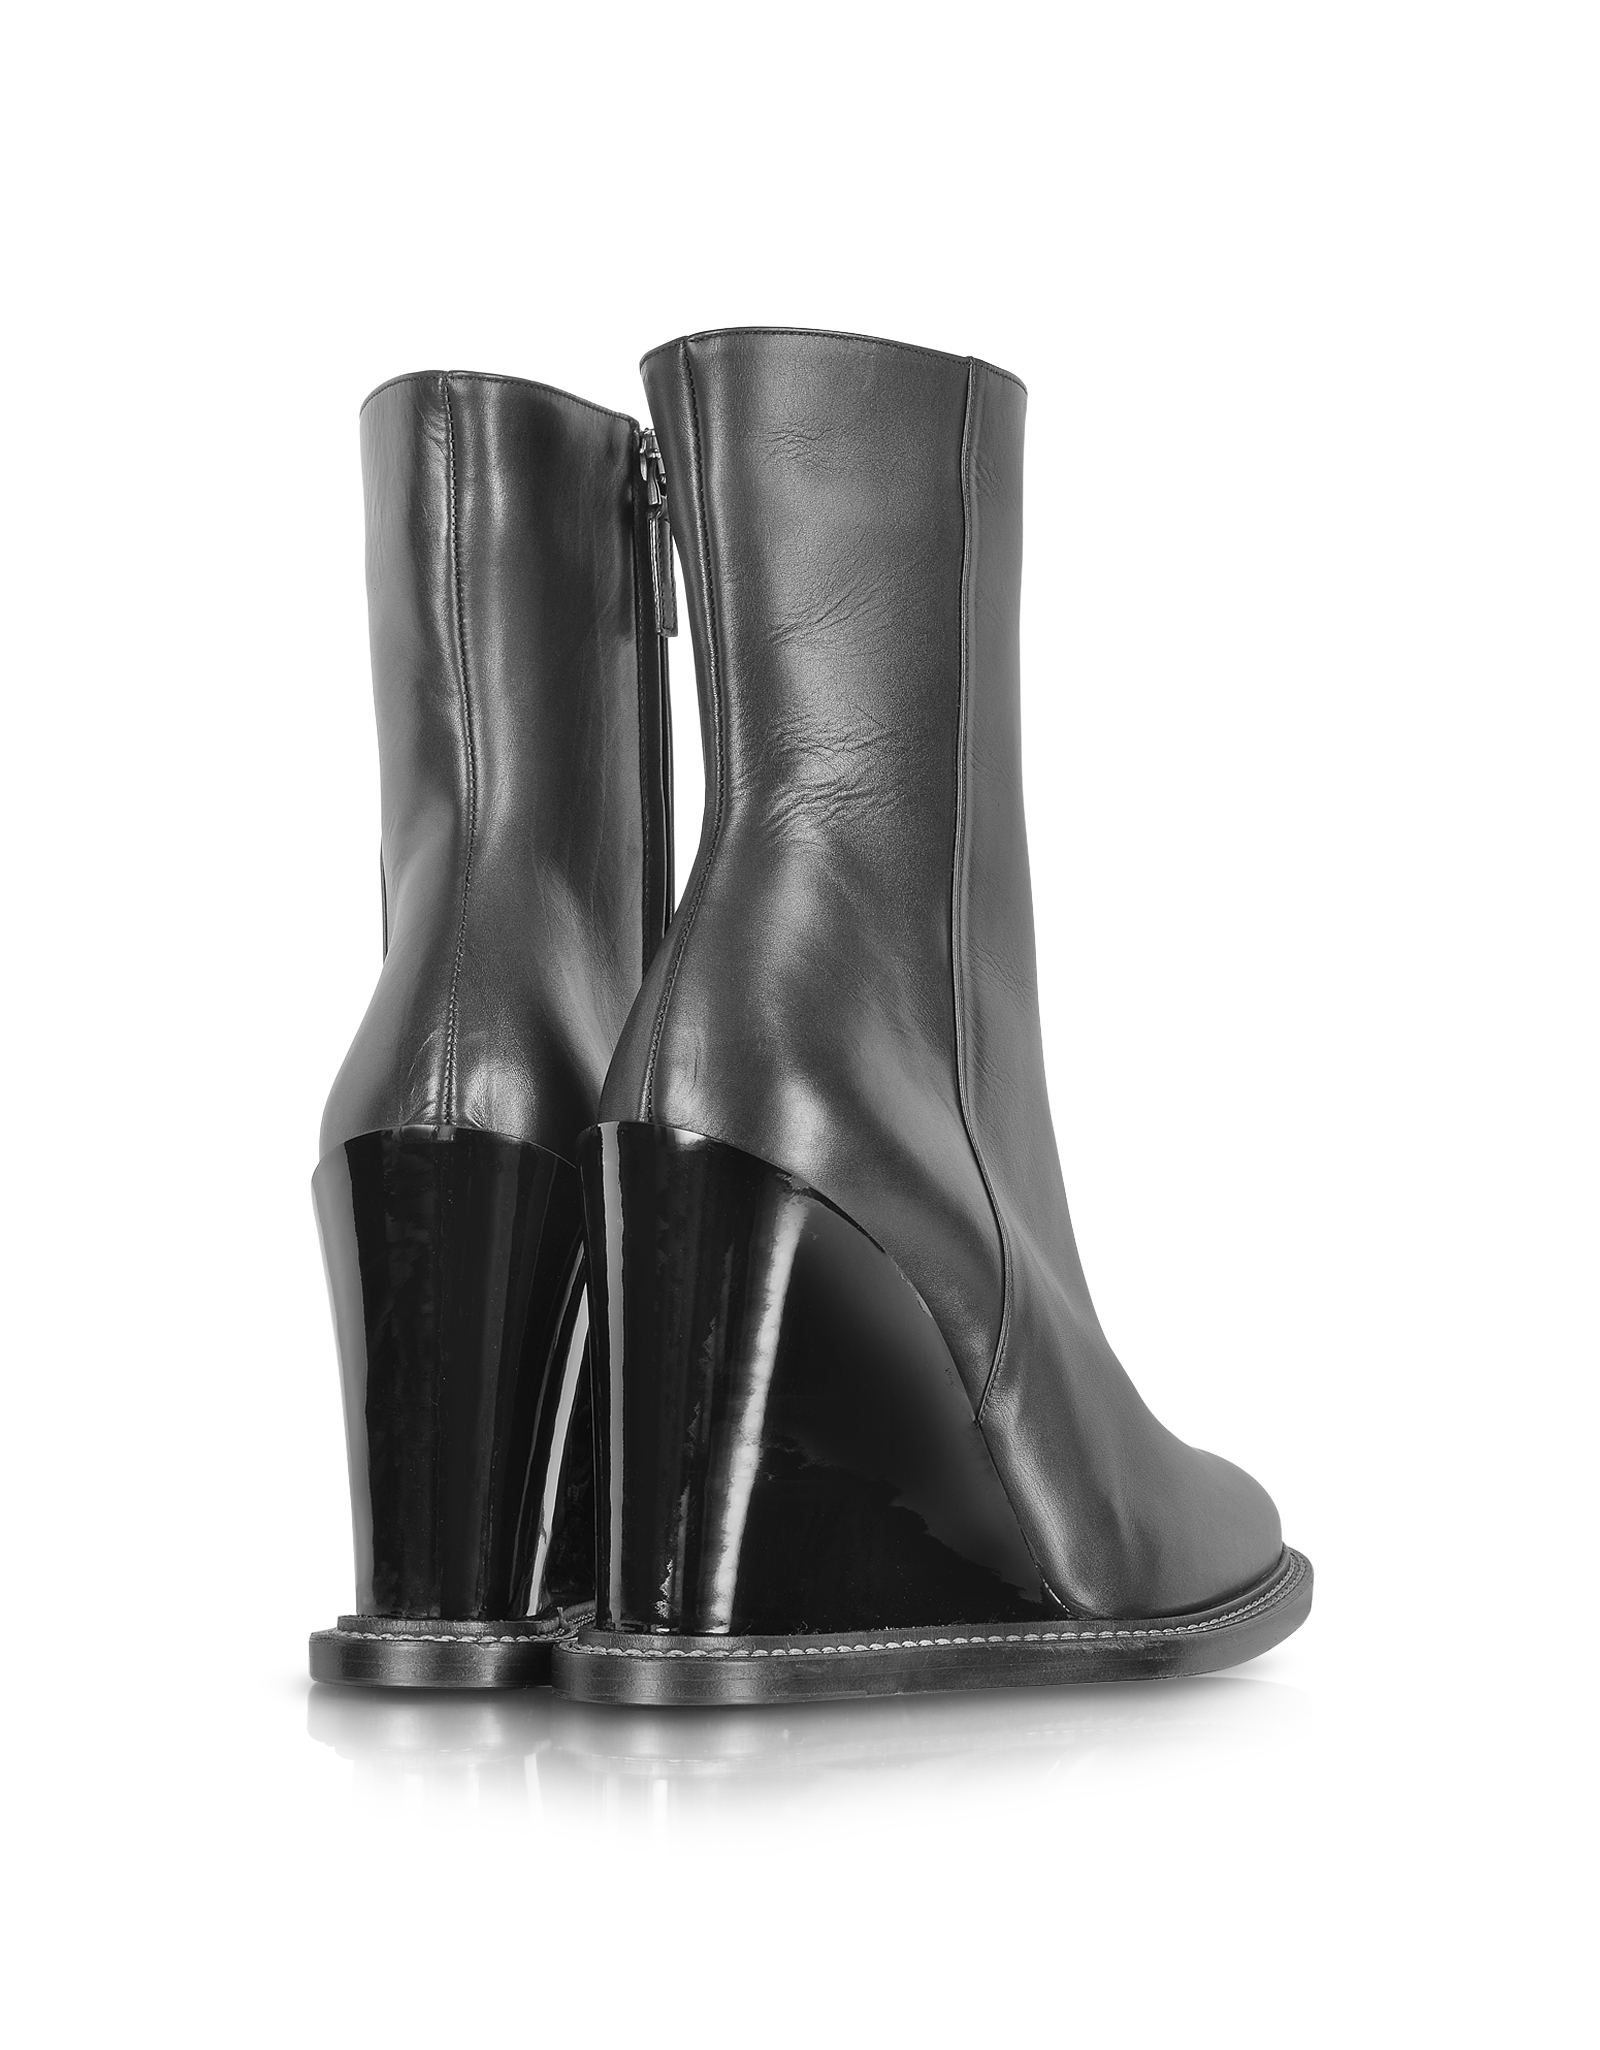 Jil sander Black Leather Wedge Ankle Boot in Black | Lyst